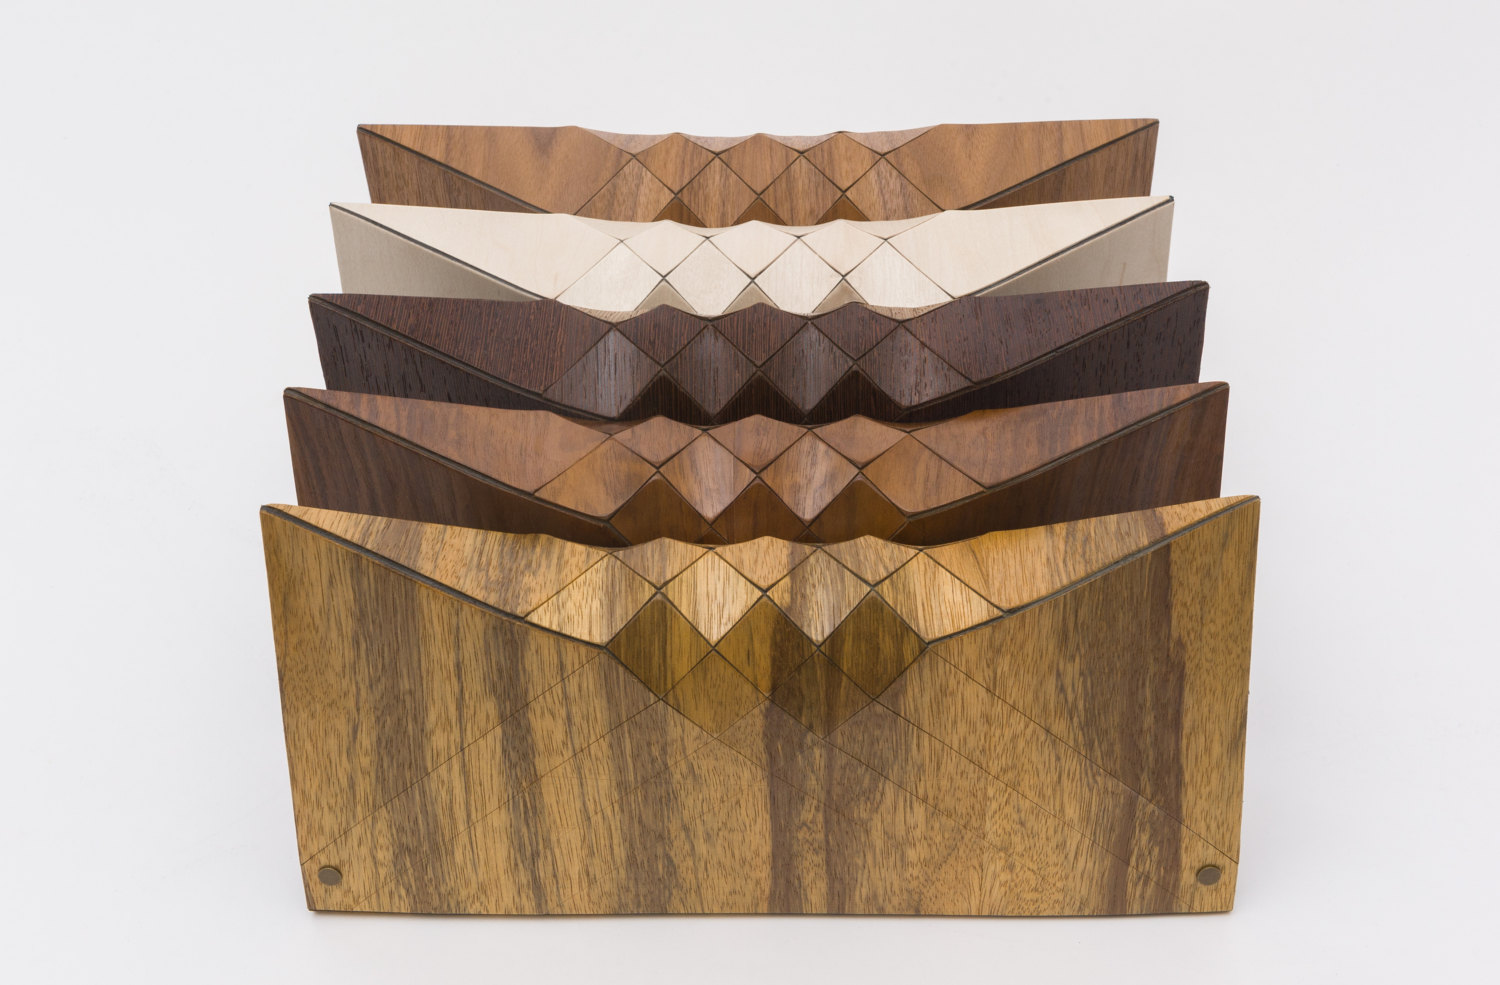 awesome-design-ideas-Wood-Clutch-TeslerMendelovitch-4